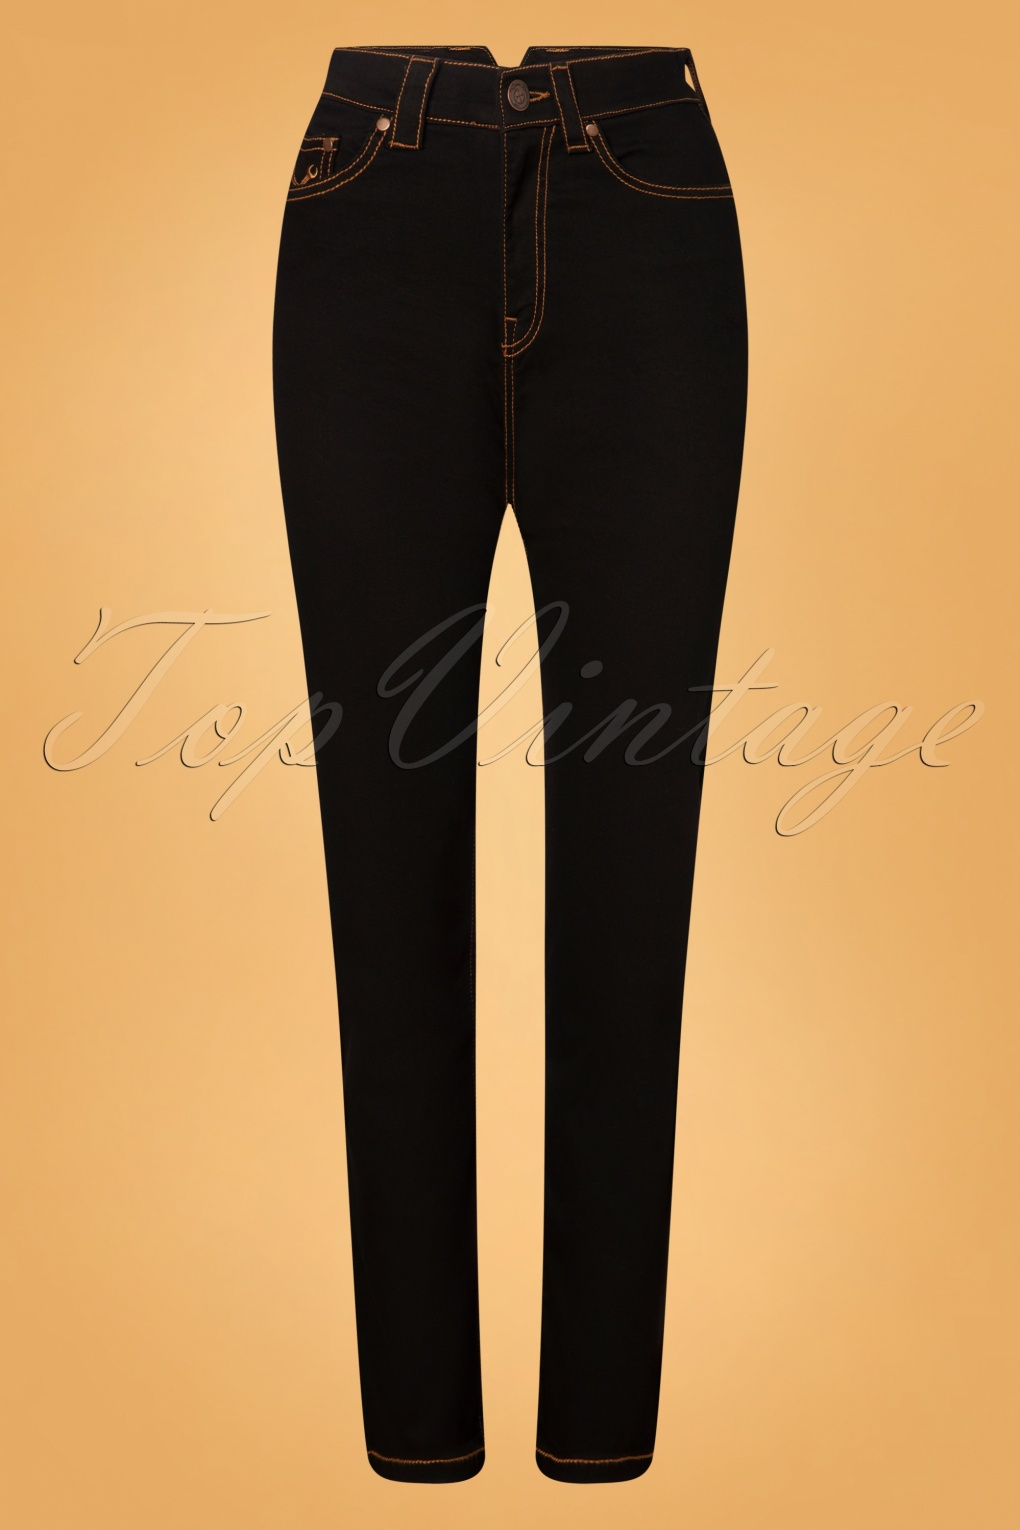 Vintage High Waisted Trousers, Sailor Pants, Jeans 50s Melly Jeans in Black £82.52 AT vintagedancer.com